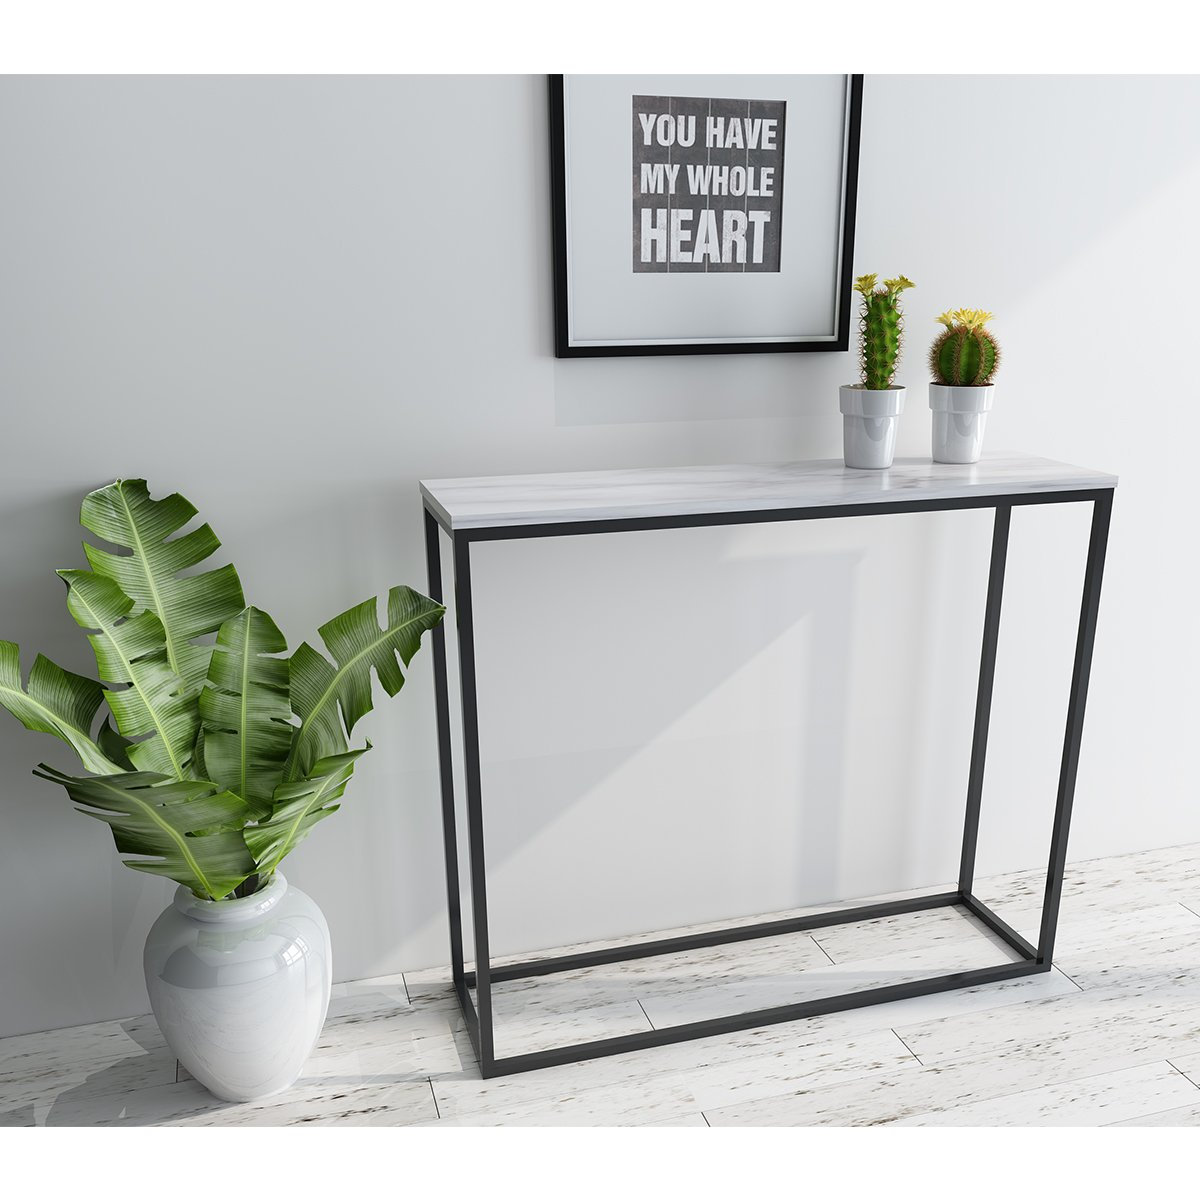 Awe Inspiring Details About Roomfitters Sofa Console Table Marble Print Top Metal Frame Accent White Narrow Ibusinesslaw Wood Chair Design Ideas Ibusinesslaworg